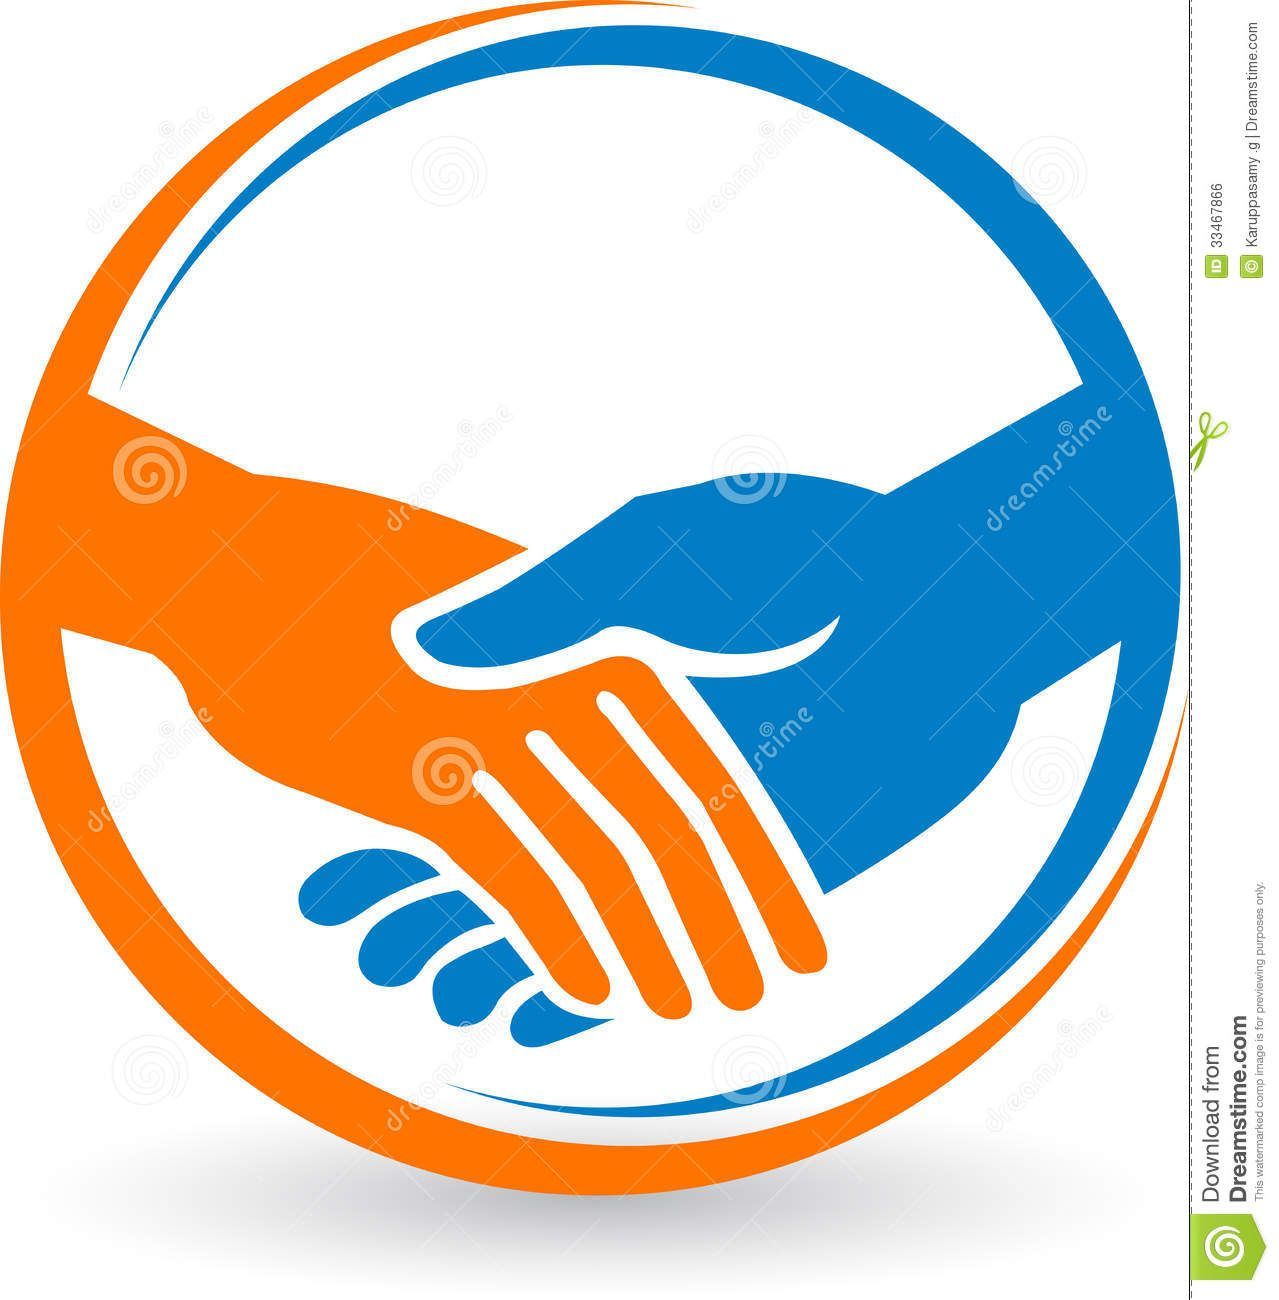 Hand Shake Logo - Download From Over 41 Million High ...